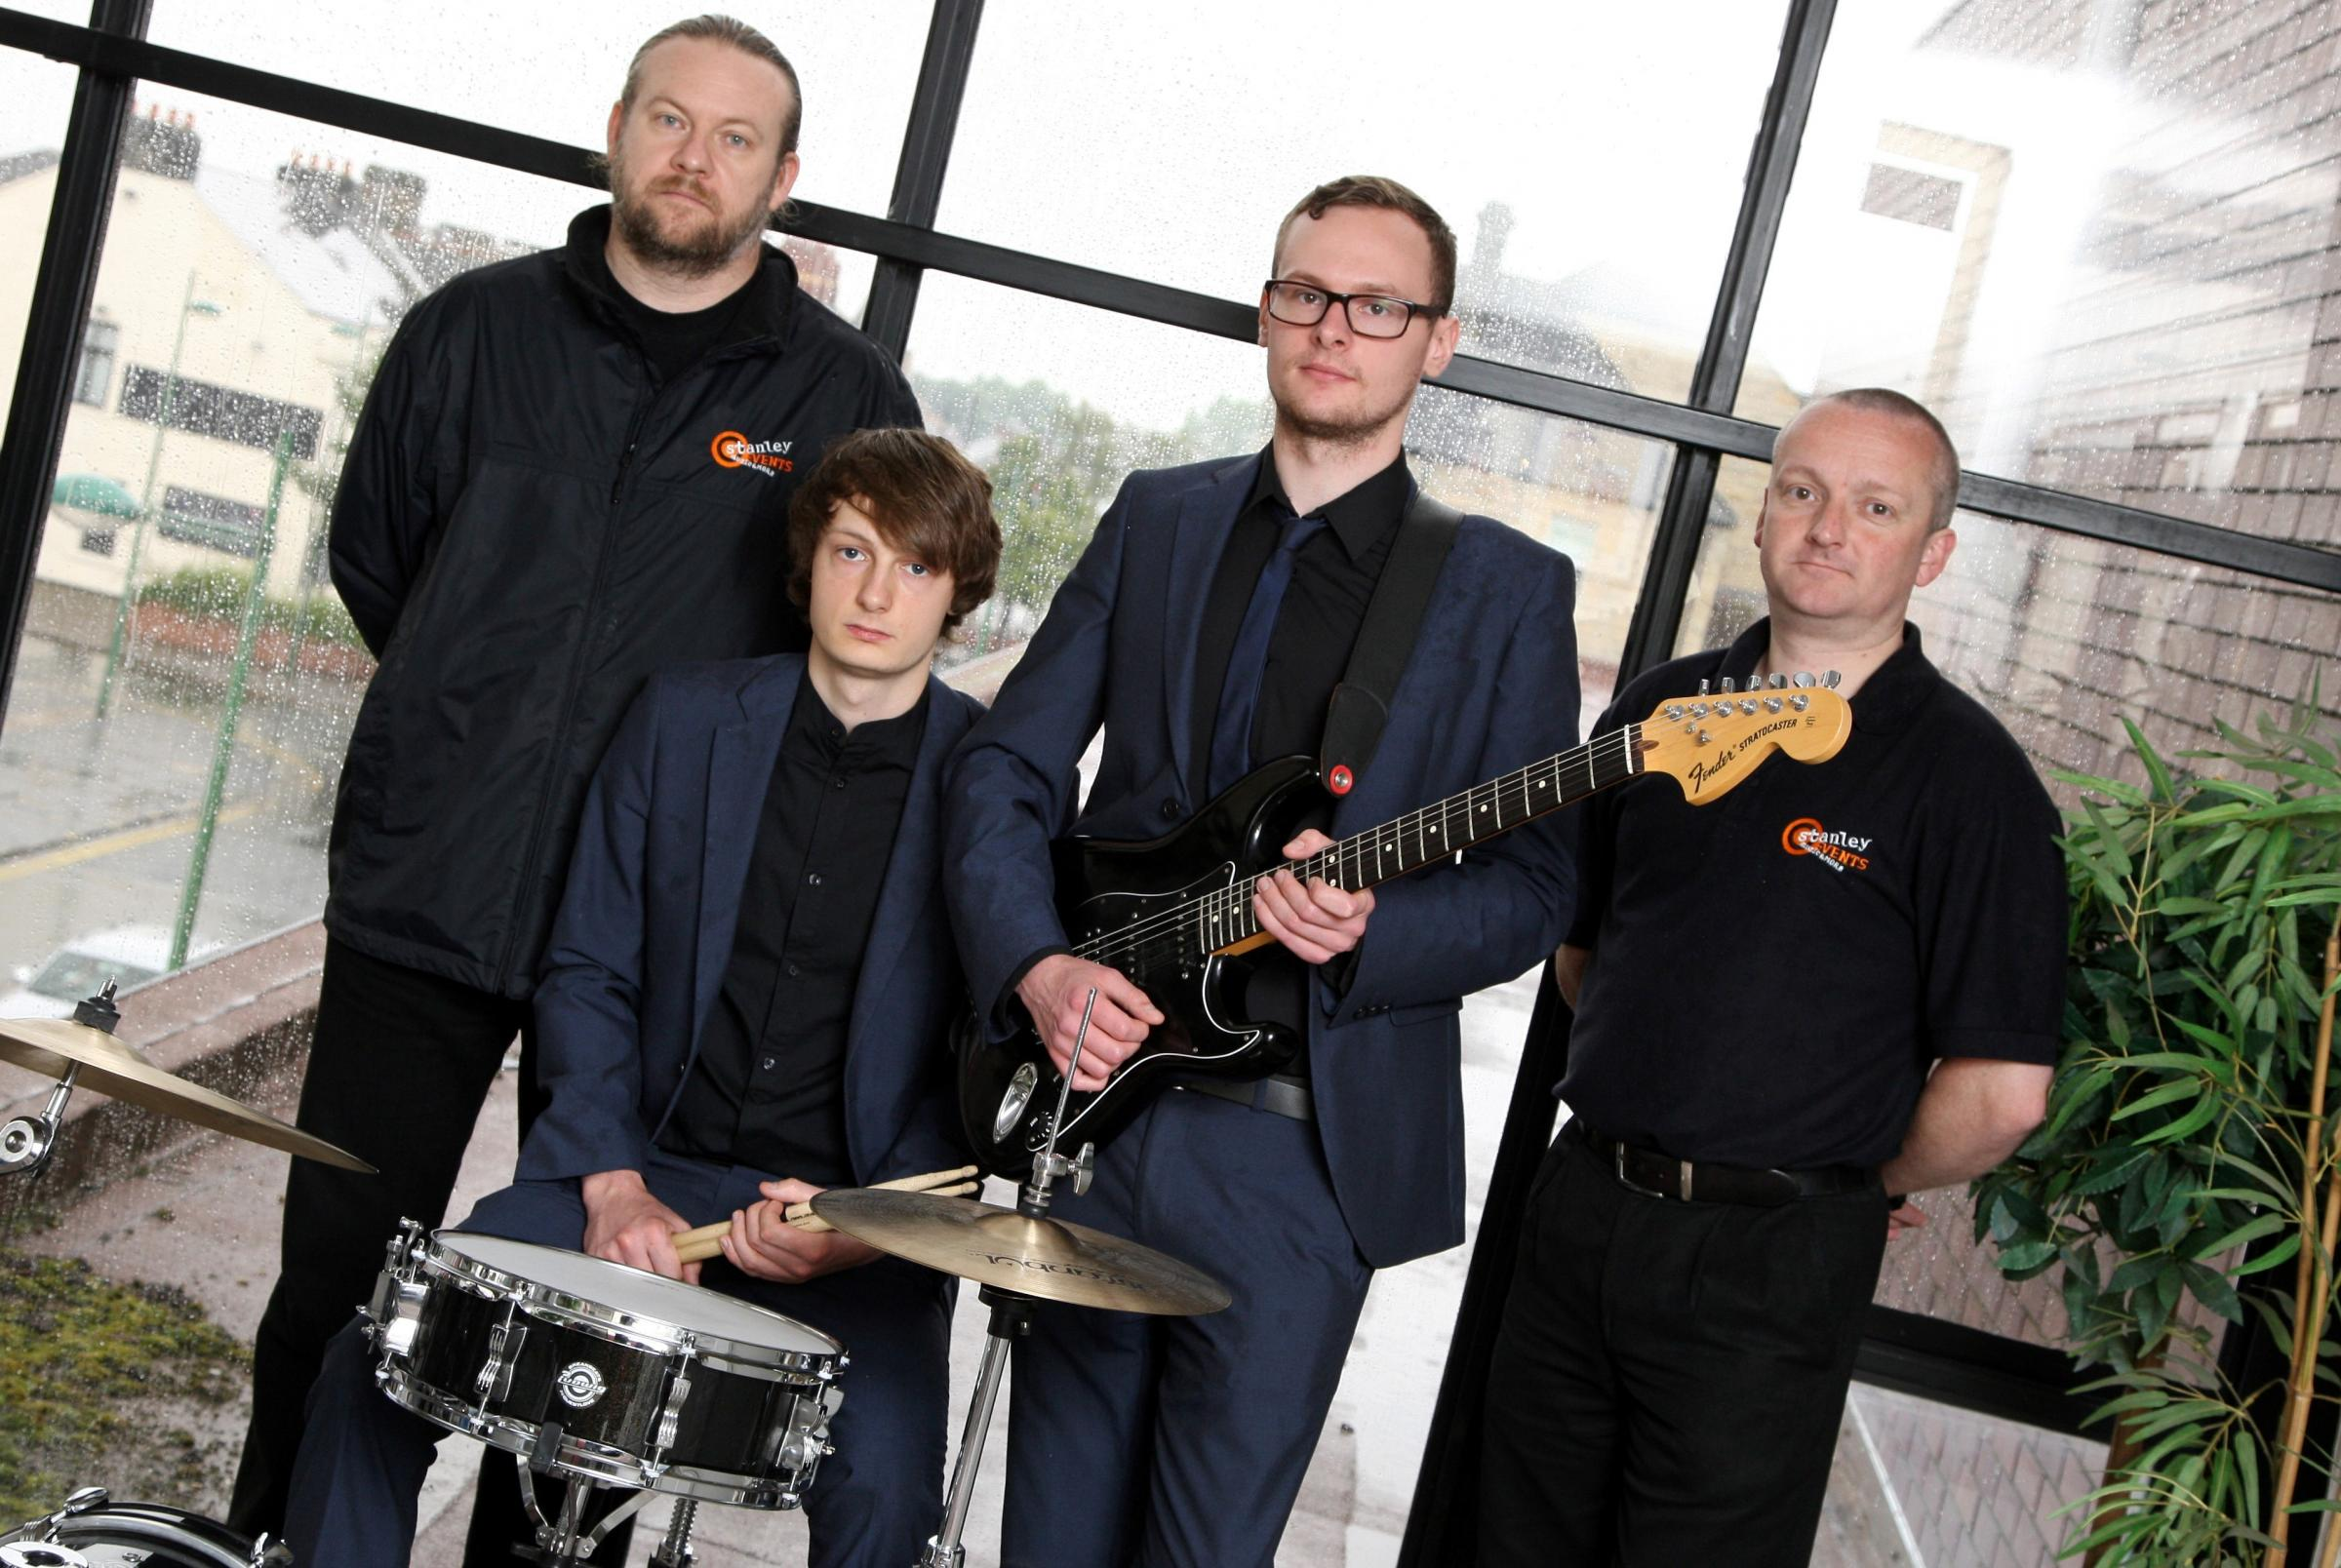 MUSIC FESTIVAL: Members of the band 'The Sponge Divers' Billy White and Jack Cummings, with volunteers Darren McMahon,  and Gareth Stones on the roof of Stanley Bowls Centre to promote an up and coming music festival in the town. Picture: TOM BANK